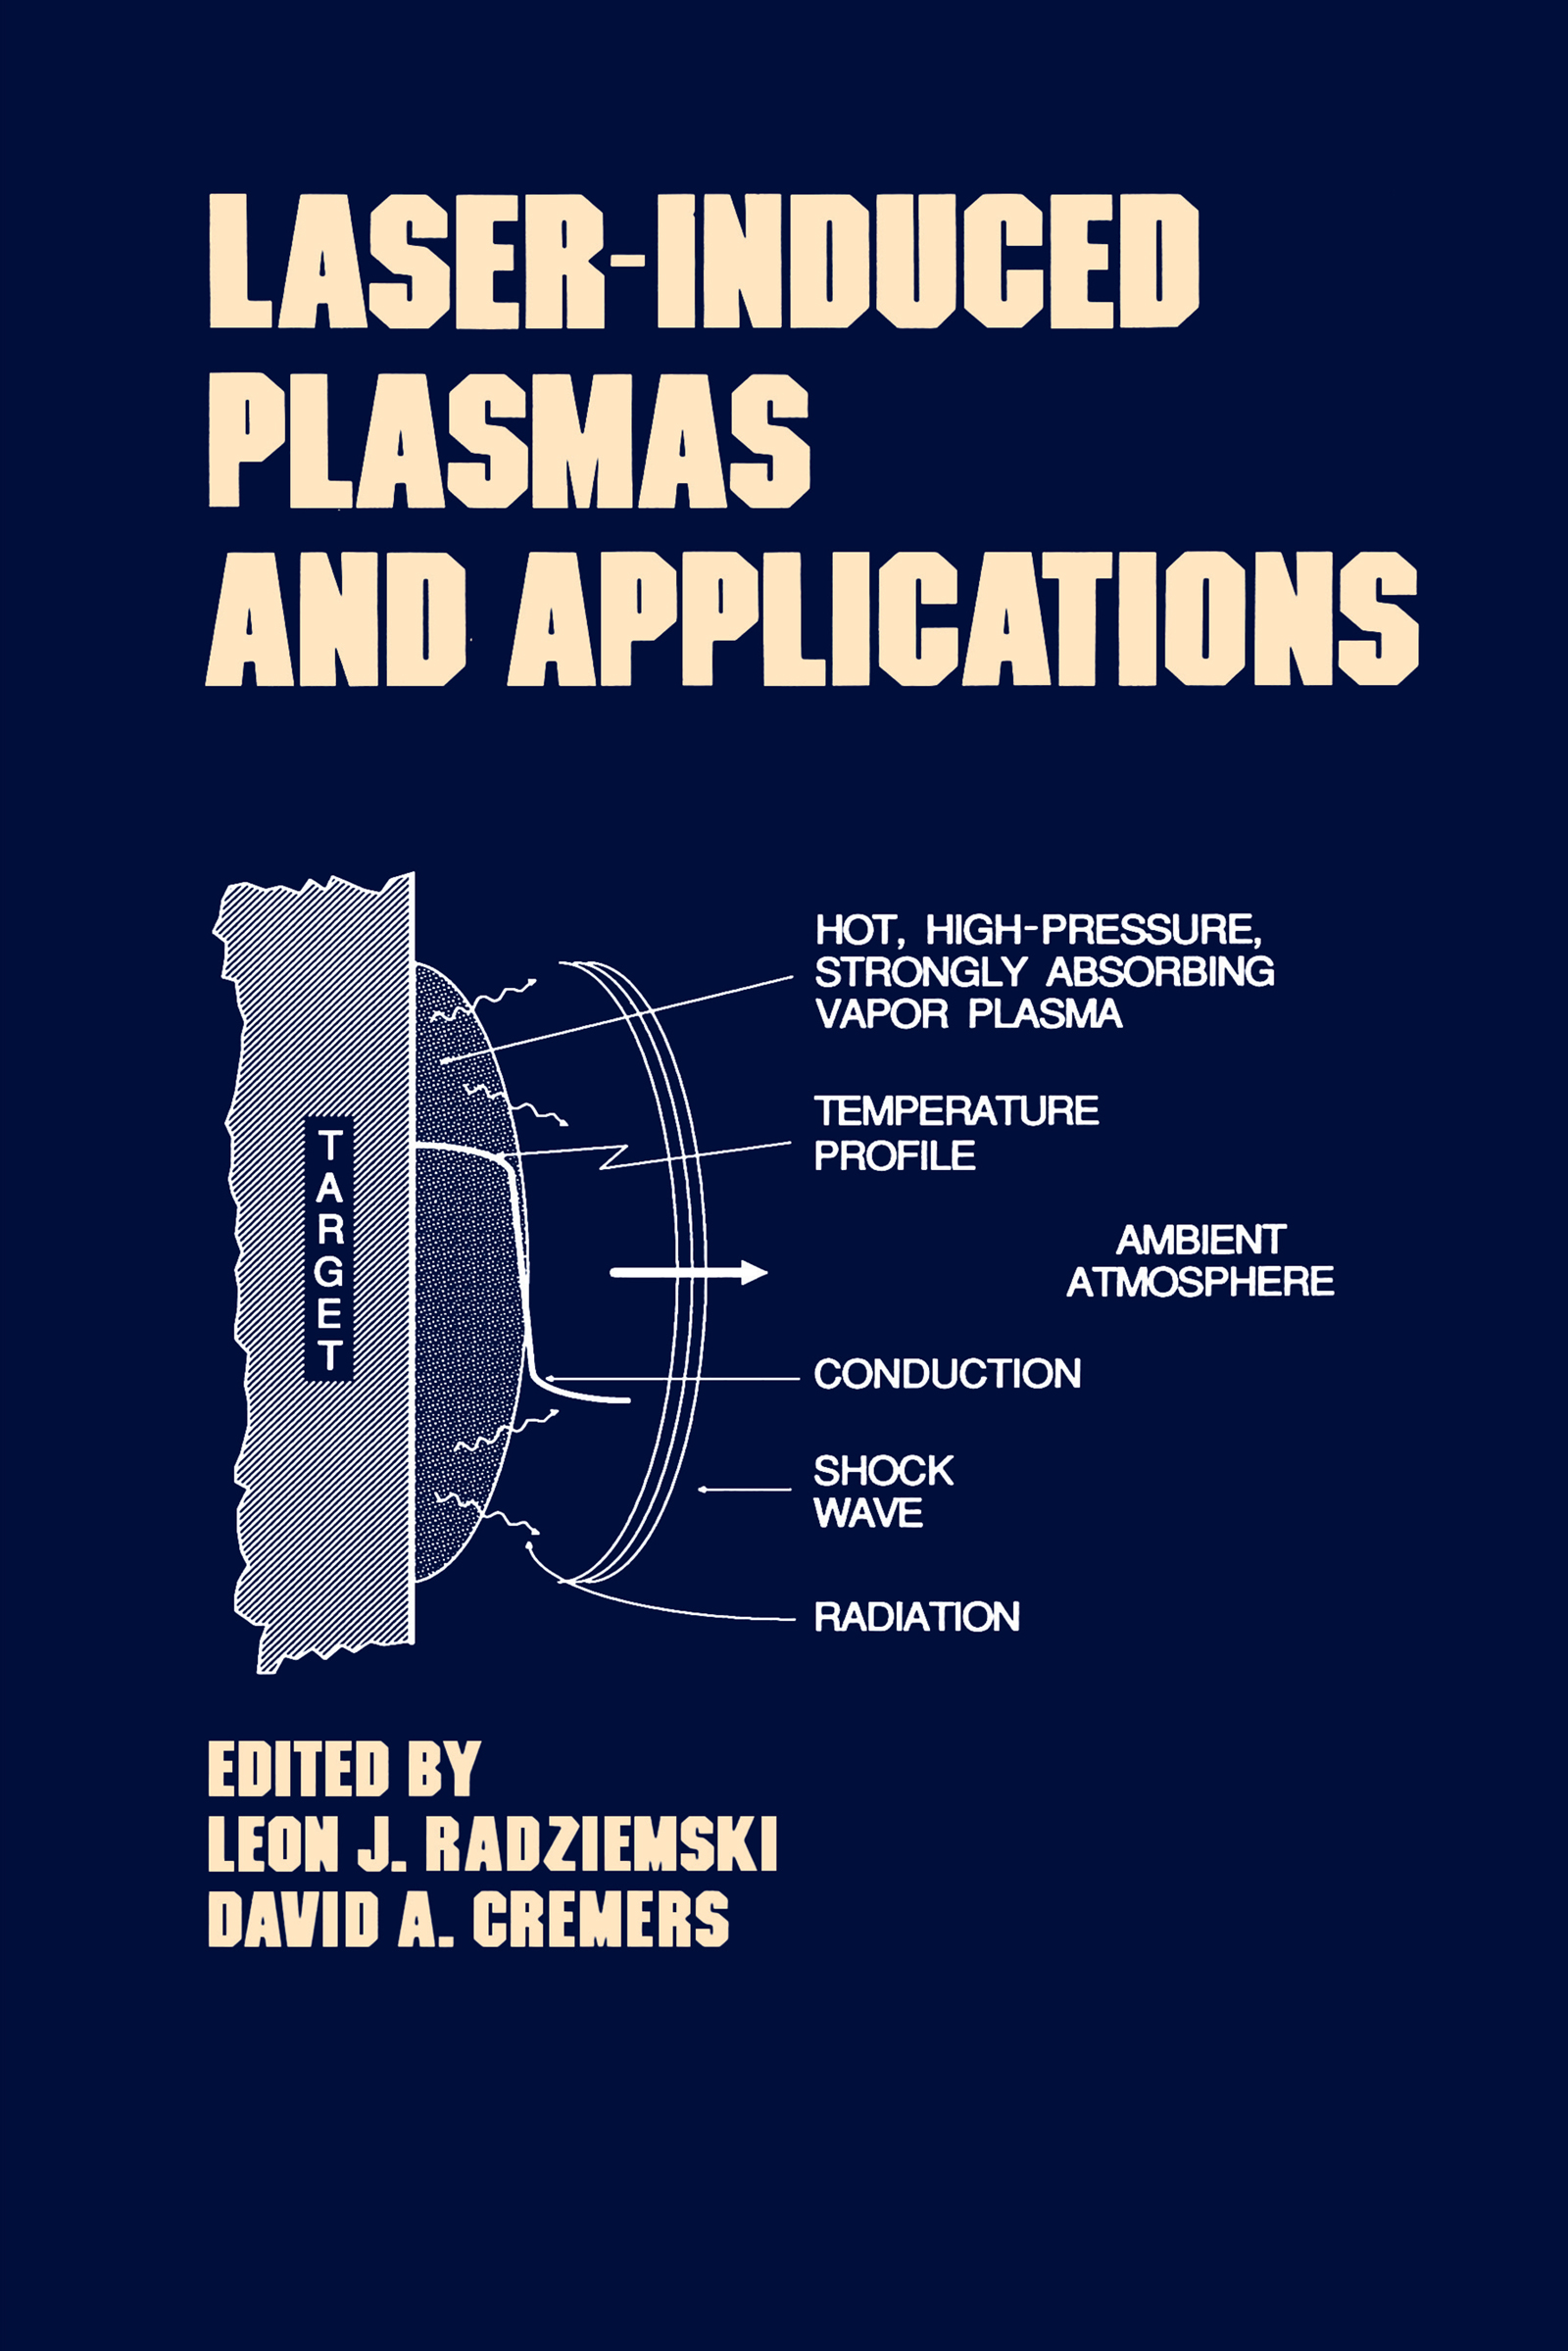 Lasers-Induced Plasmas and Applications